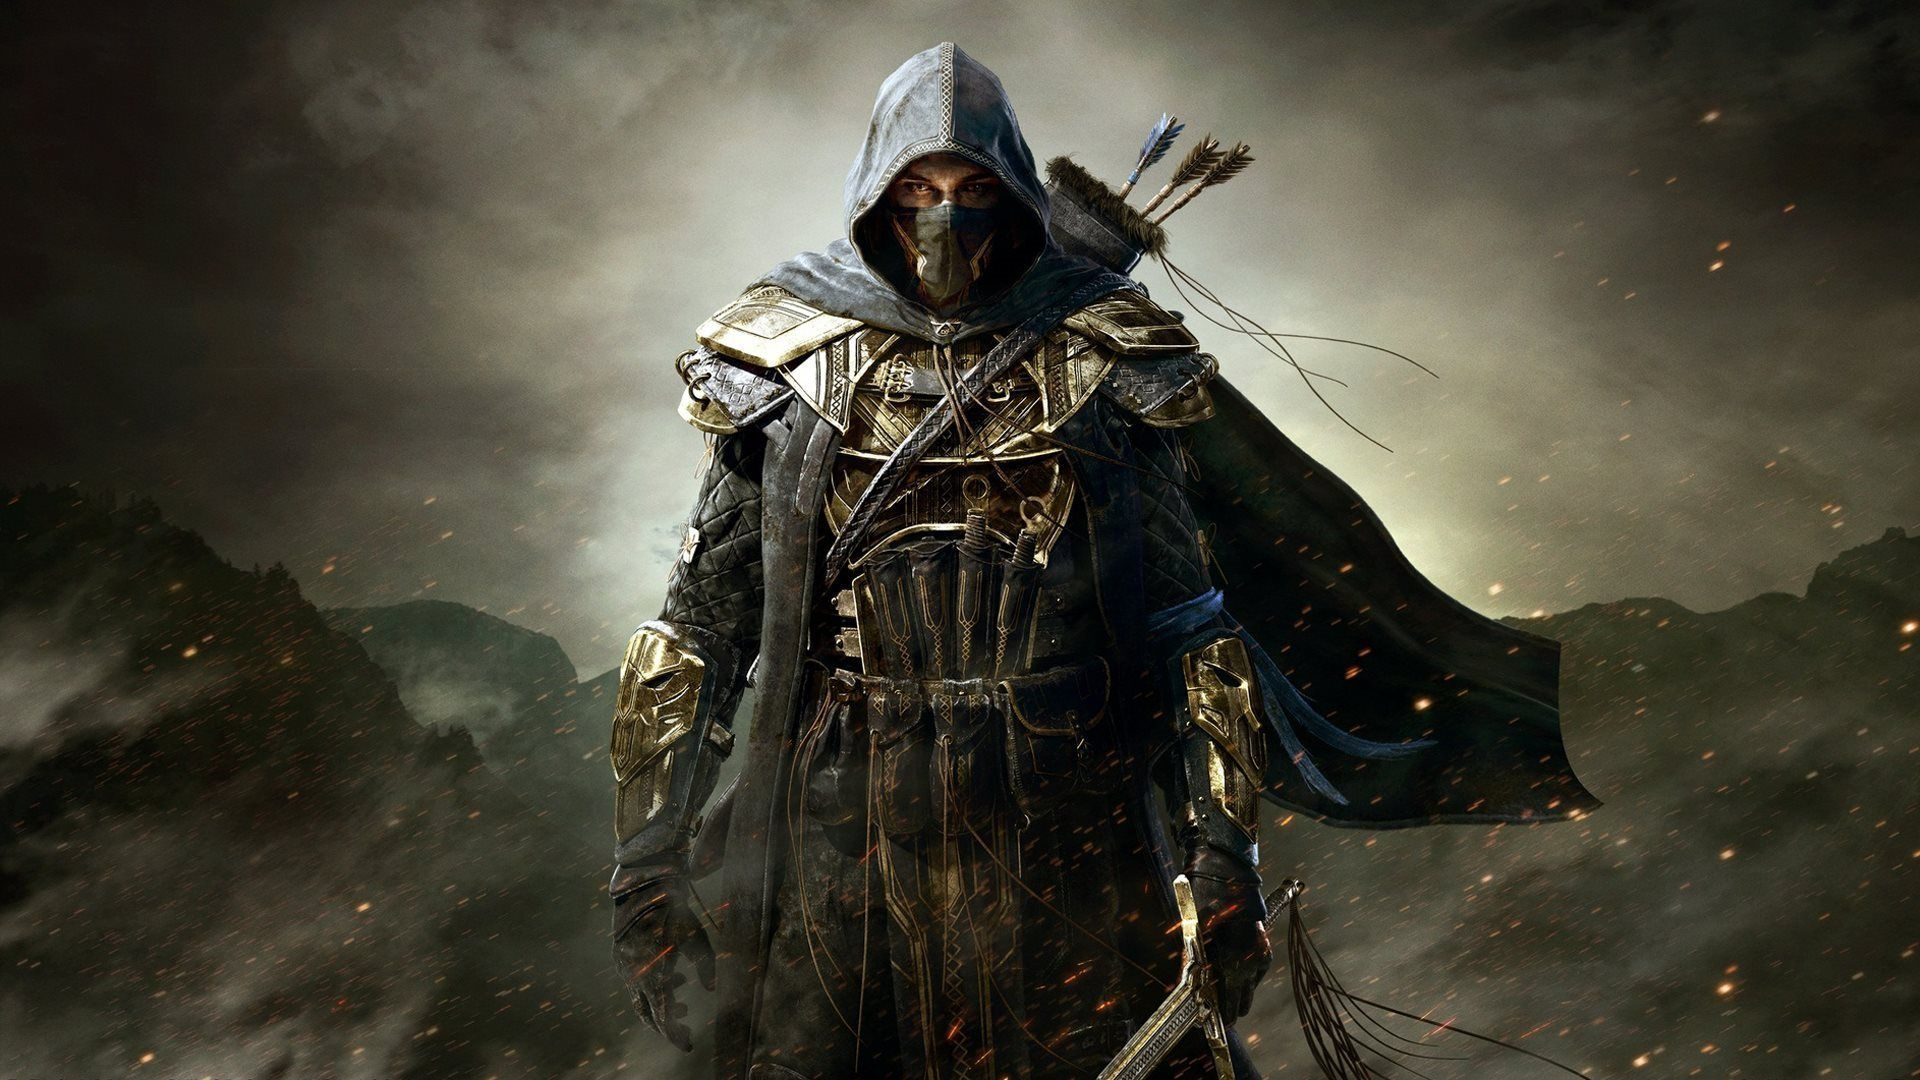 1920x1080 Fantasy Warrior wallpapers (Desktop, Phone, Tablet) - Awesome ...